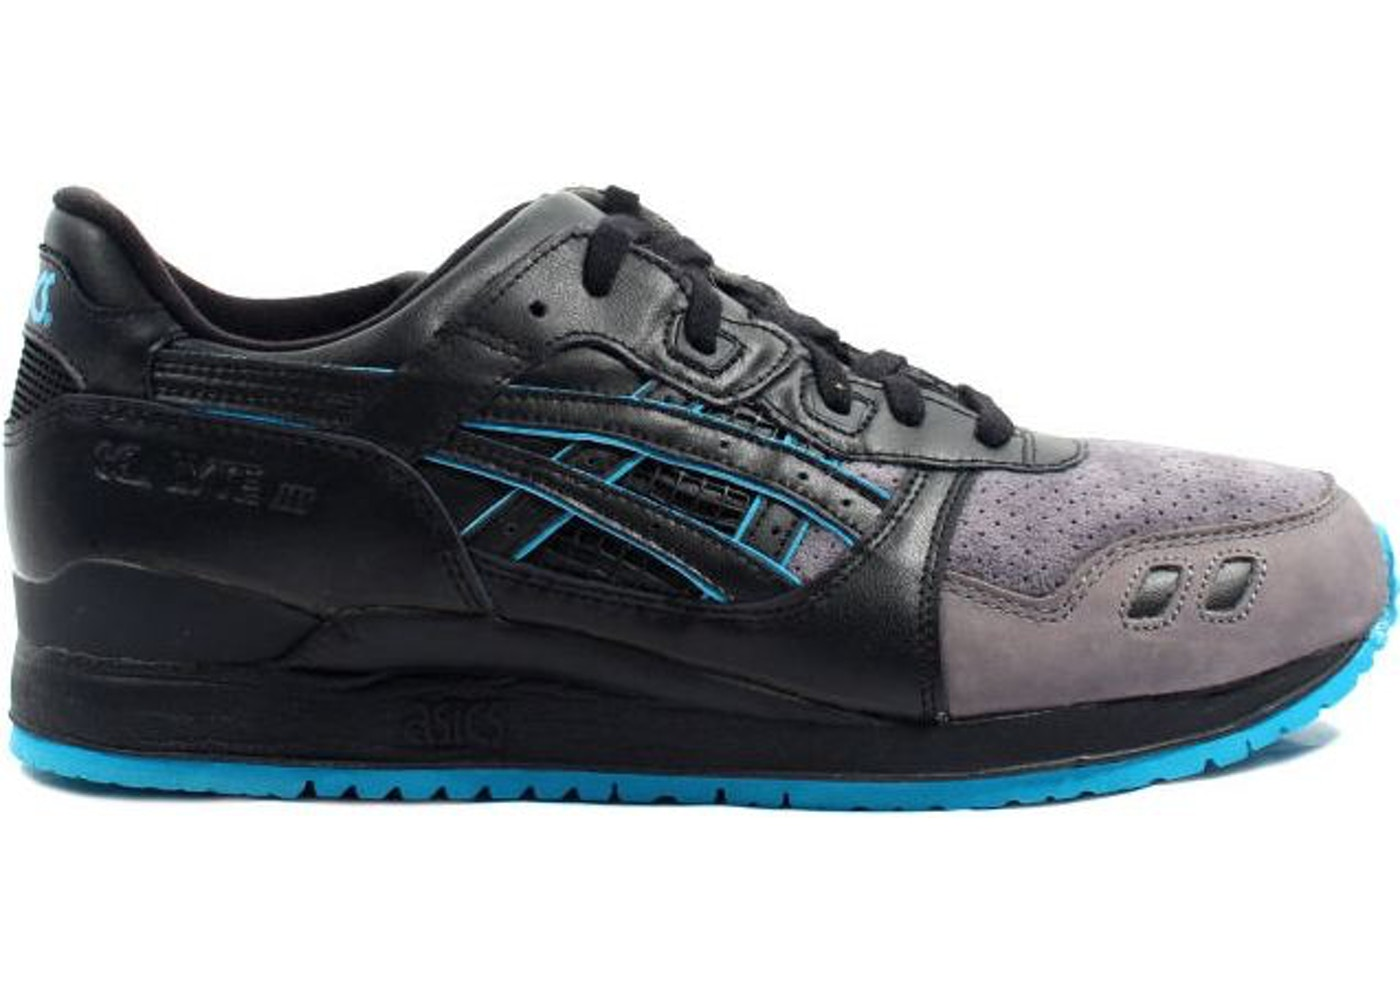 brand new b0db2 c3a92 Buy ASICS Shoes & Deadstock Sneakers